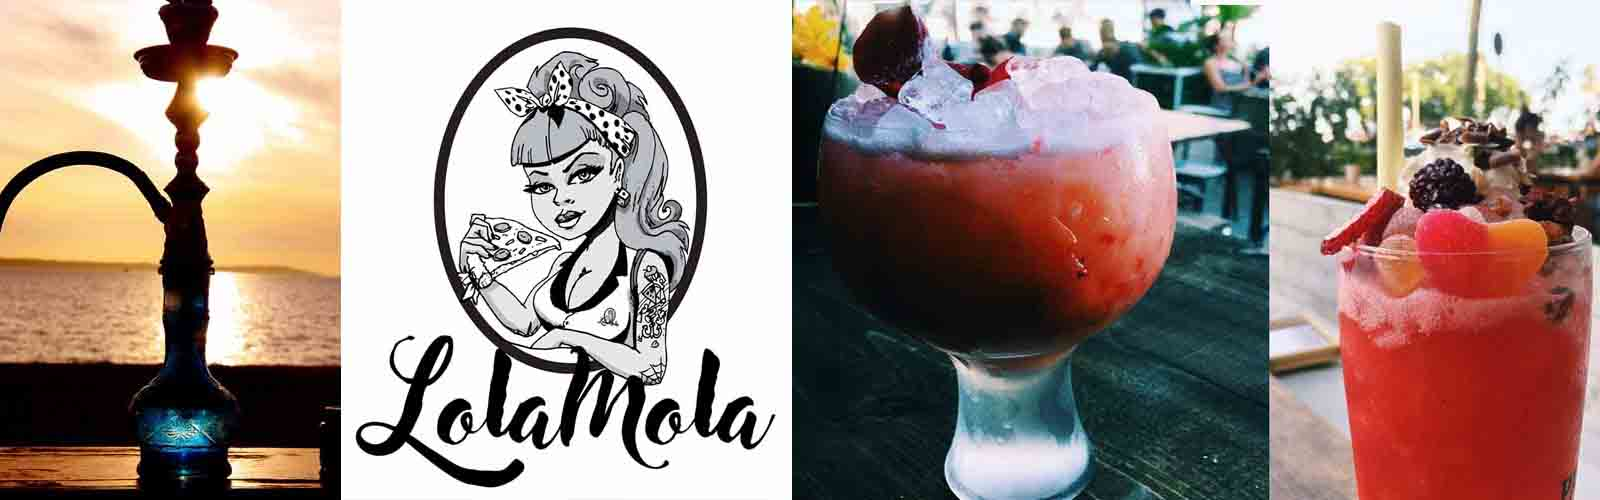 Drink and Laugh near the beach at Lola Mola